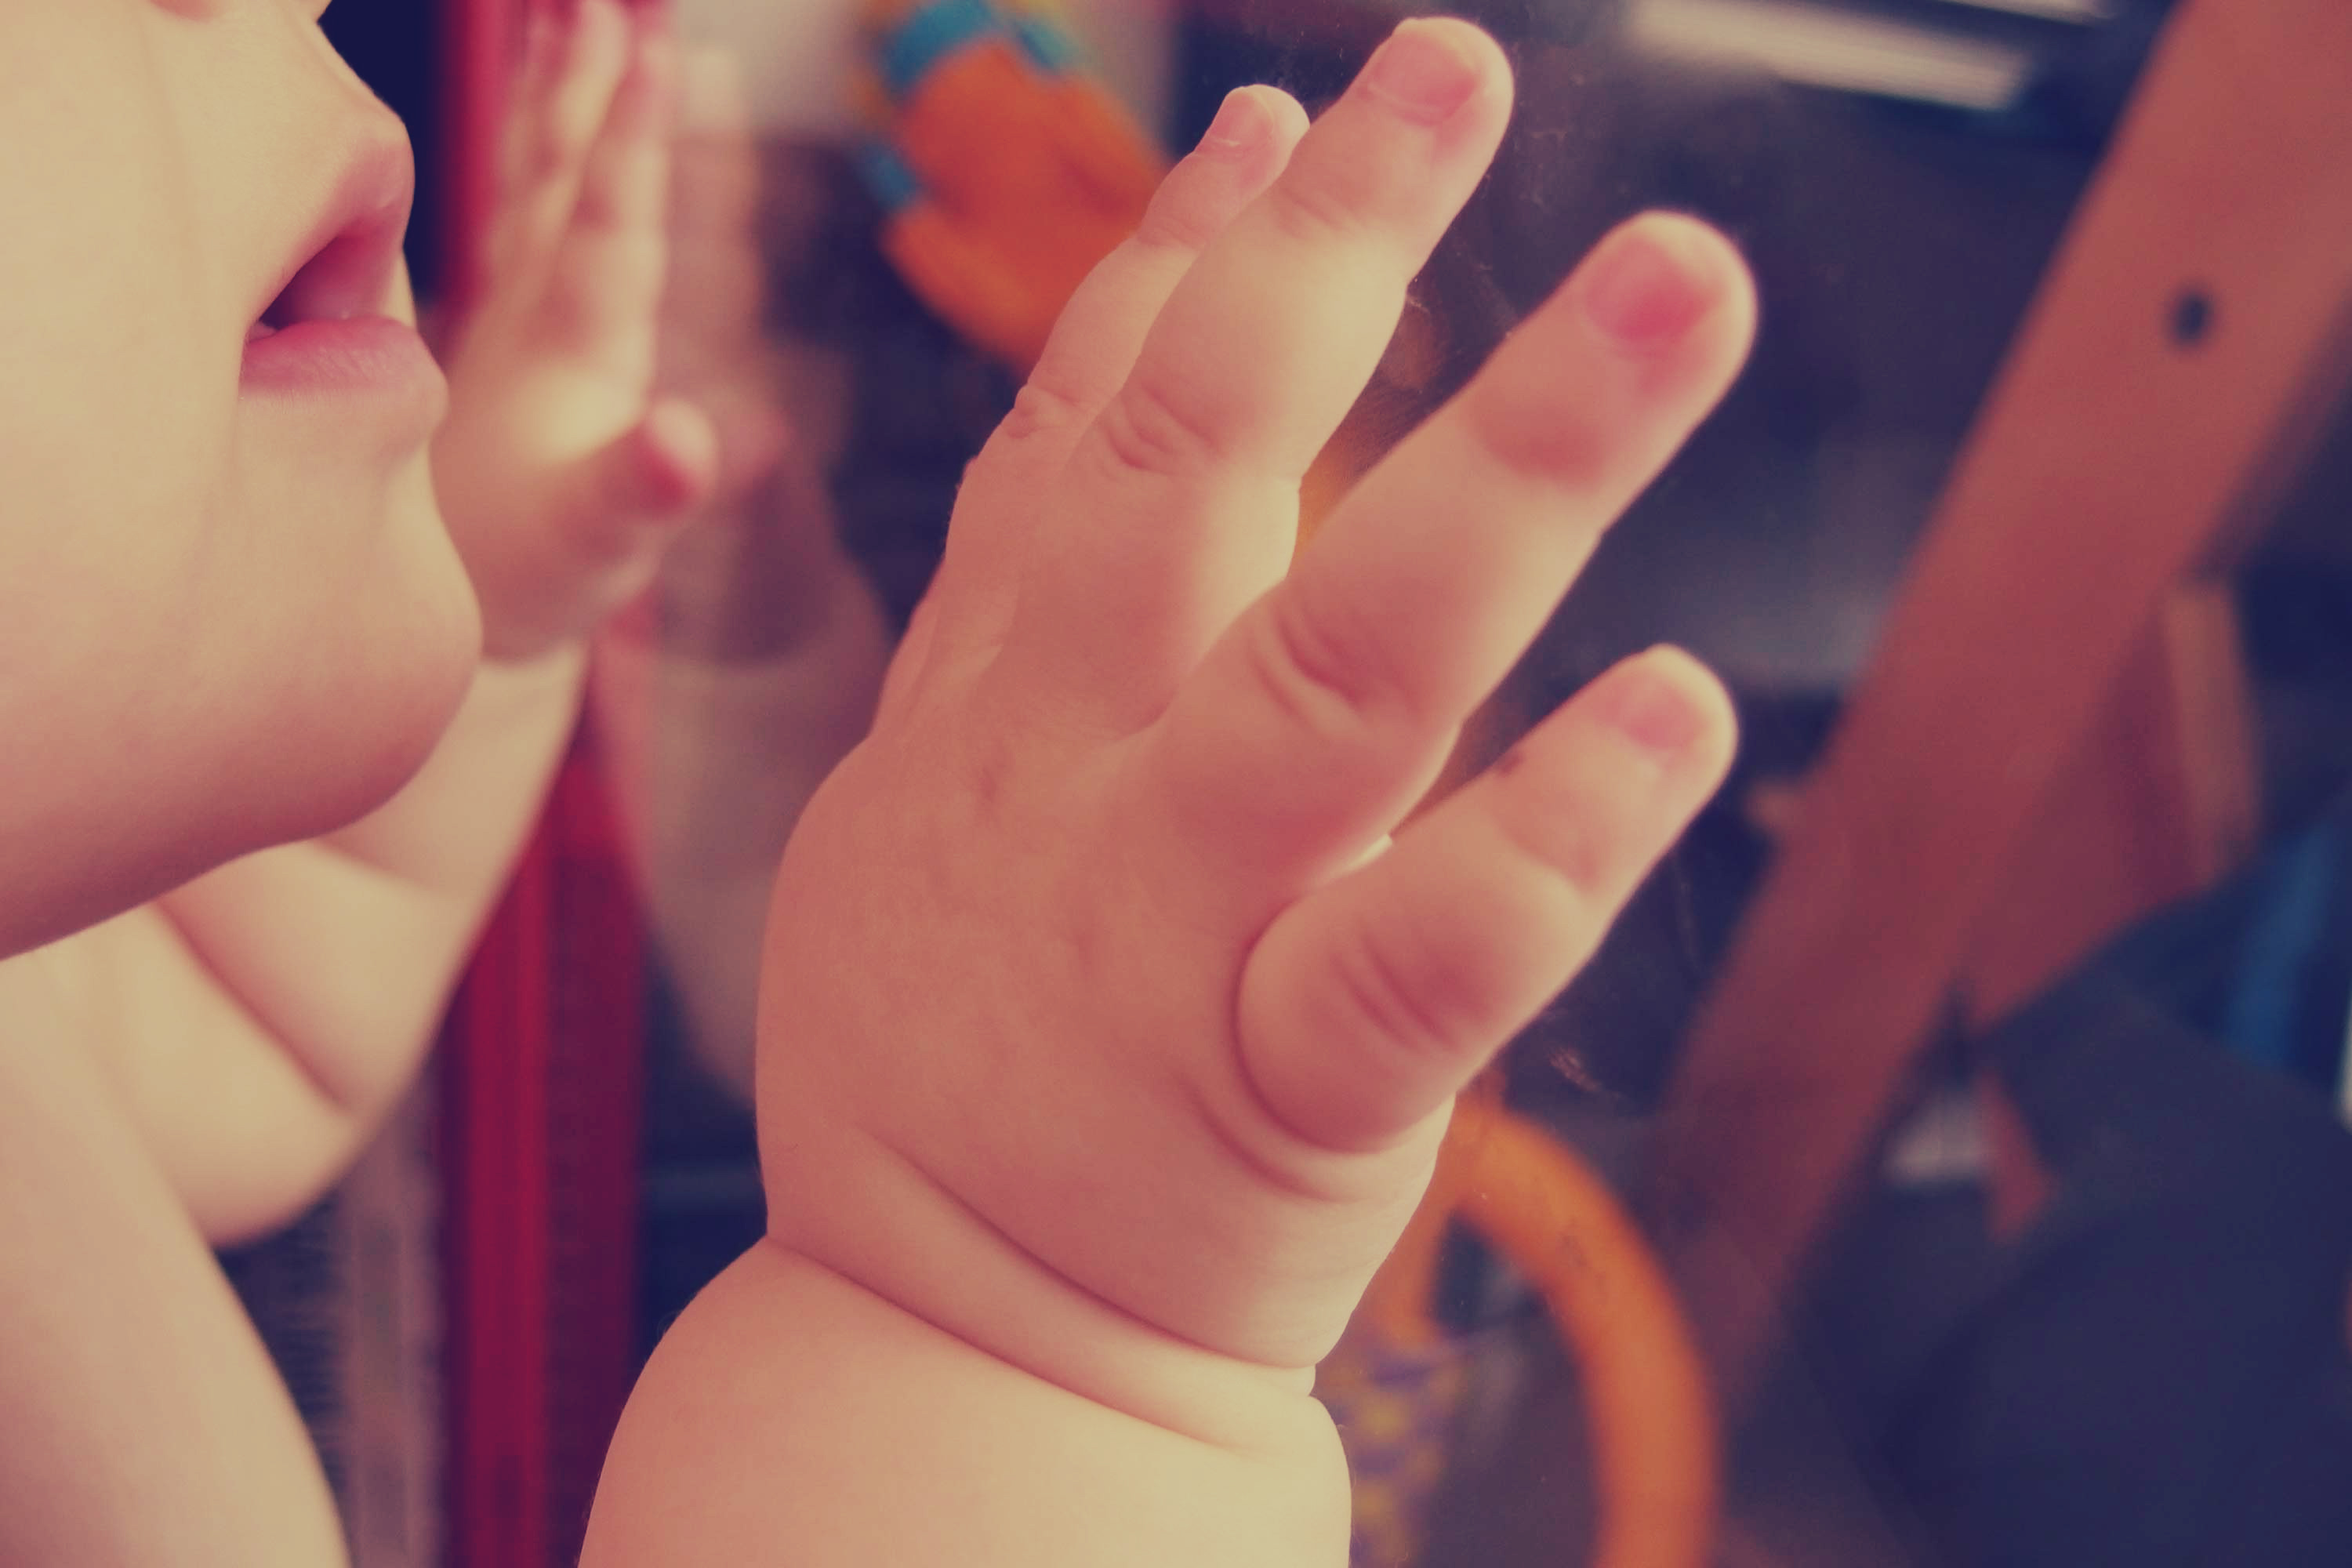 baby, child, hands, mouth, people